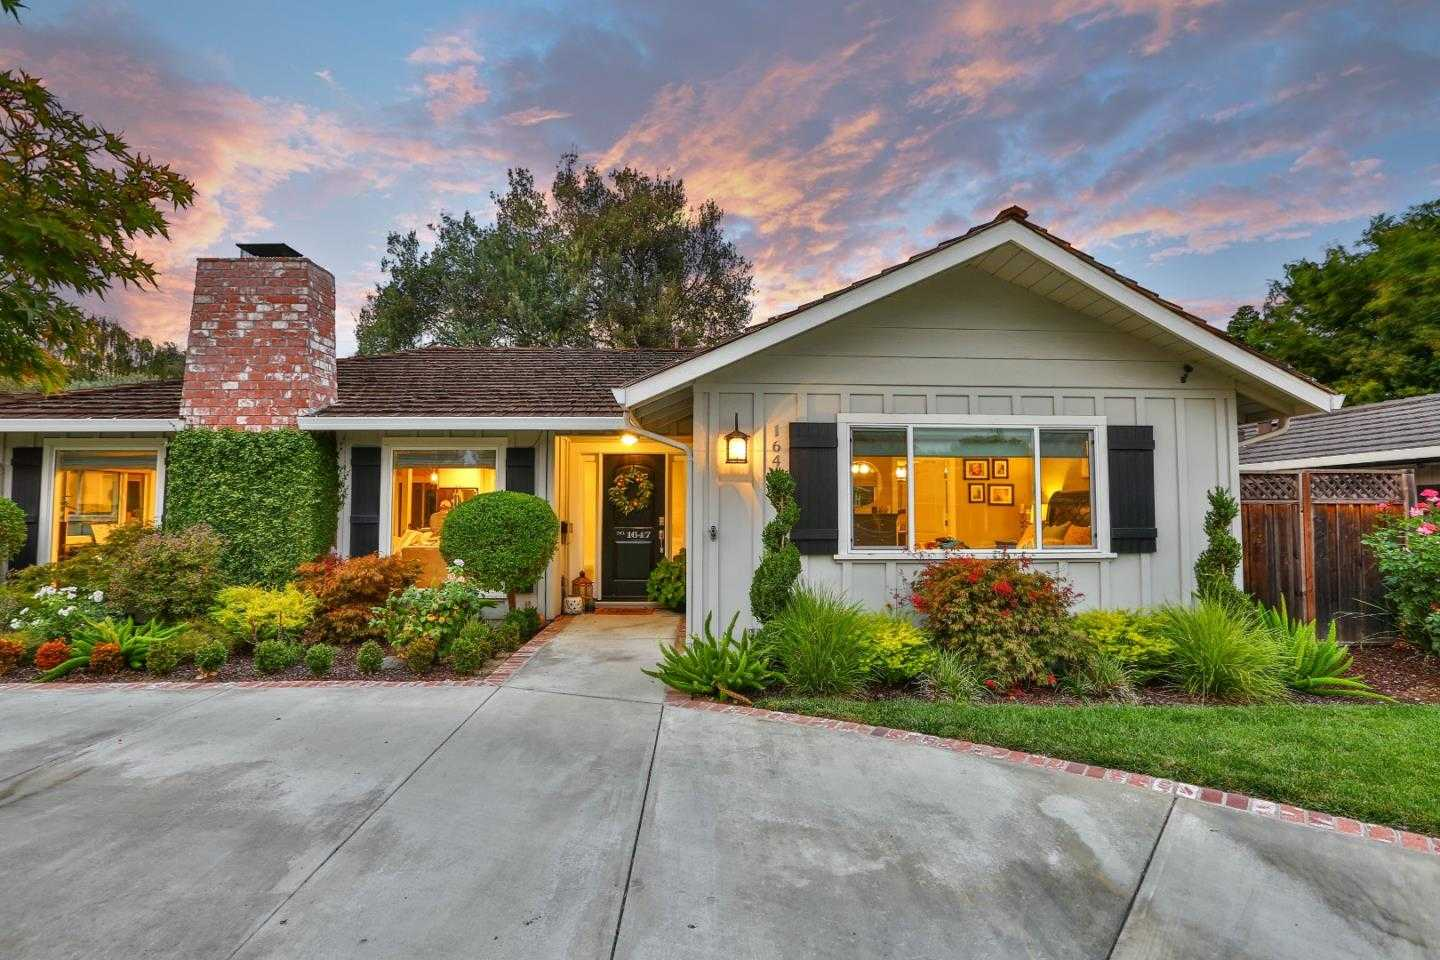 $2,148,888 - 4Br/2Ba -  for Sale in San Jose